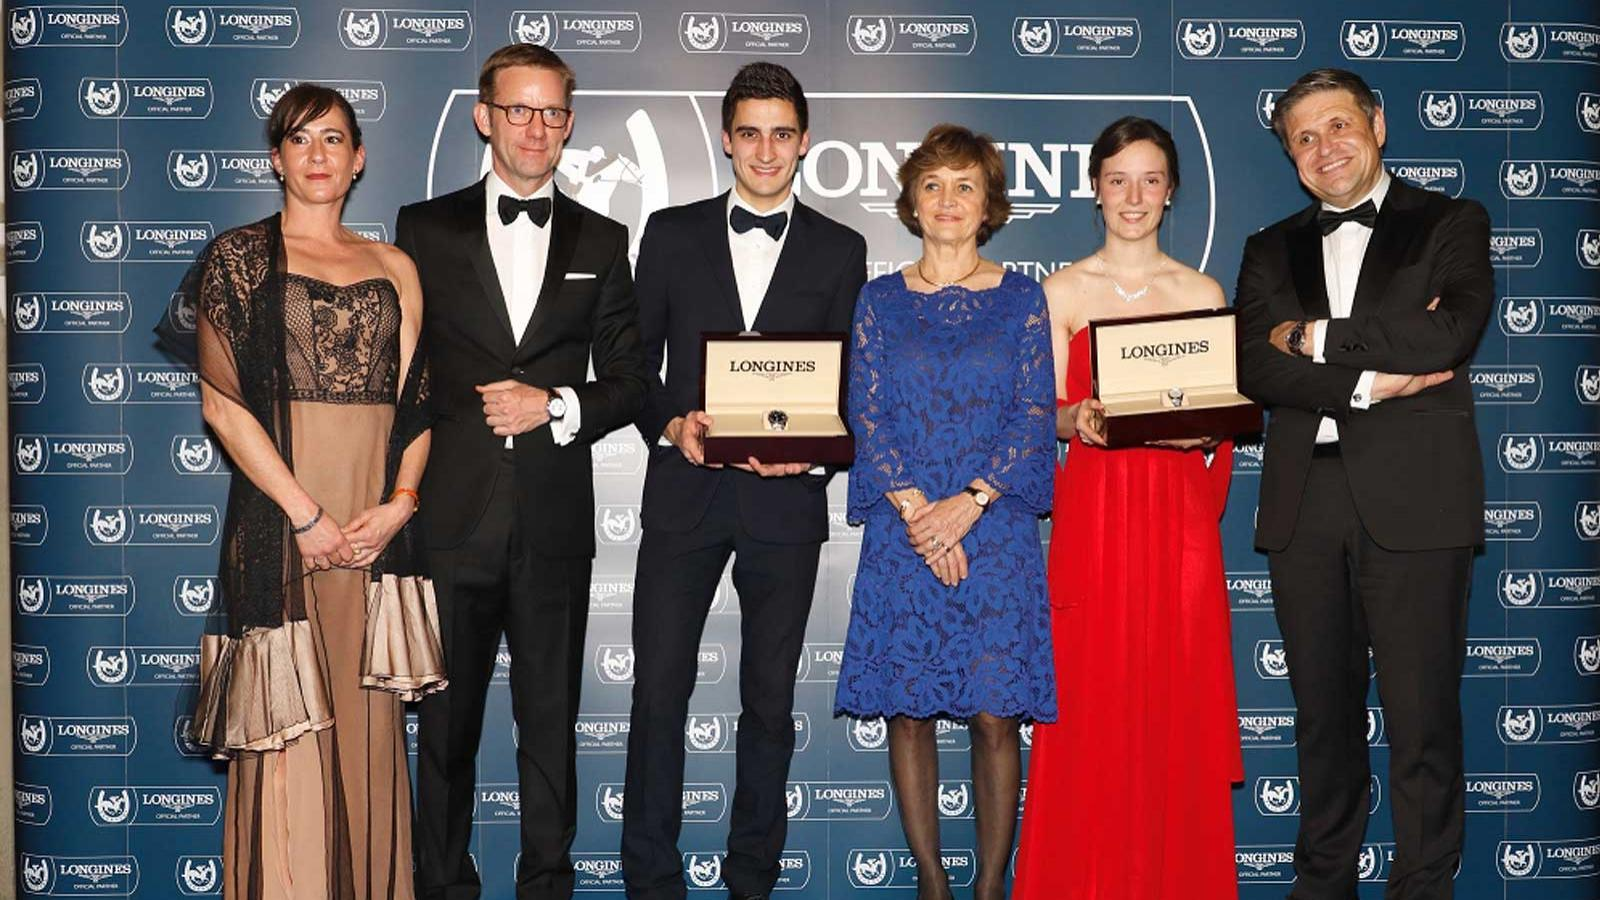 Fegentri general Assembly & Longines World Fegentri Championships for  Gentlemen and Ladies riders award ceremony; Horse Racing; Award; 2018